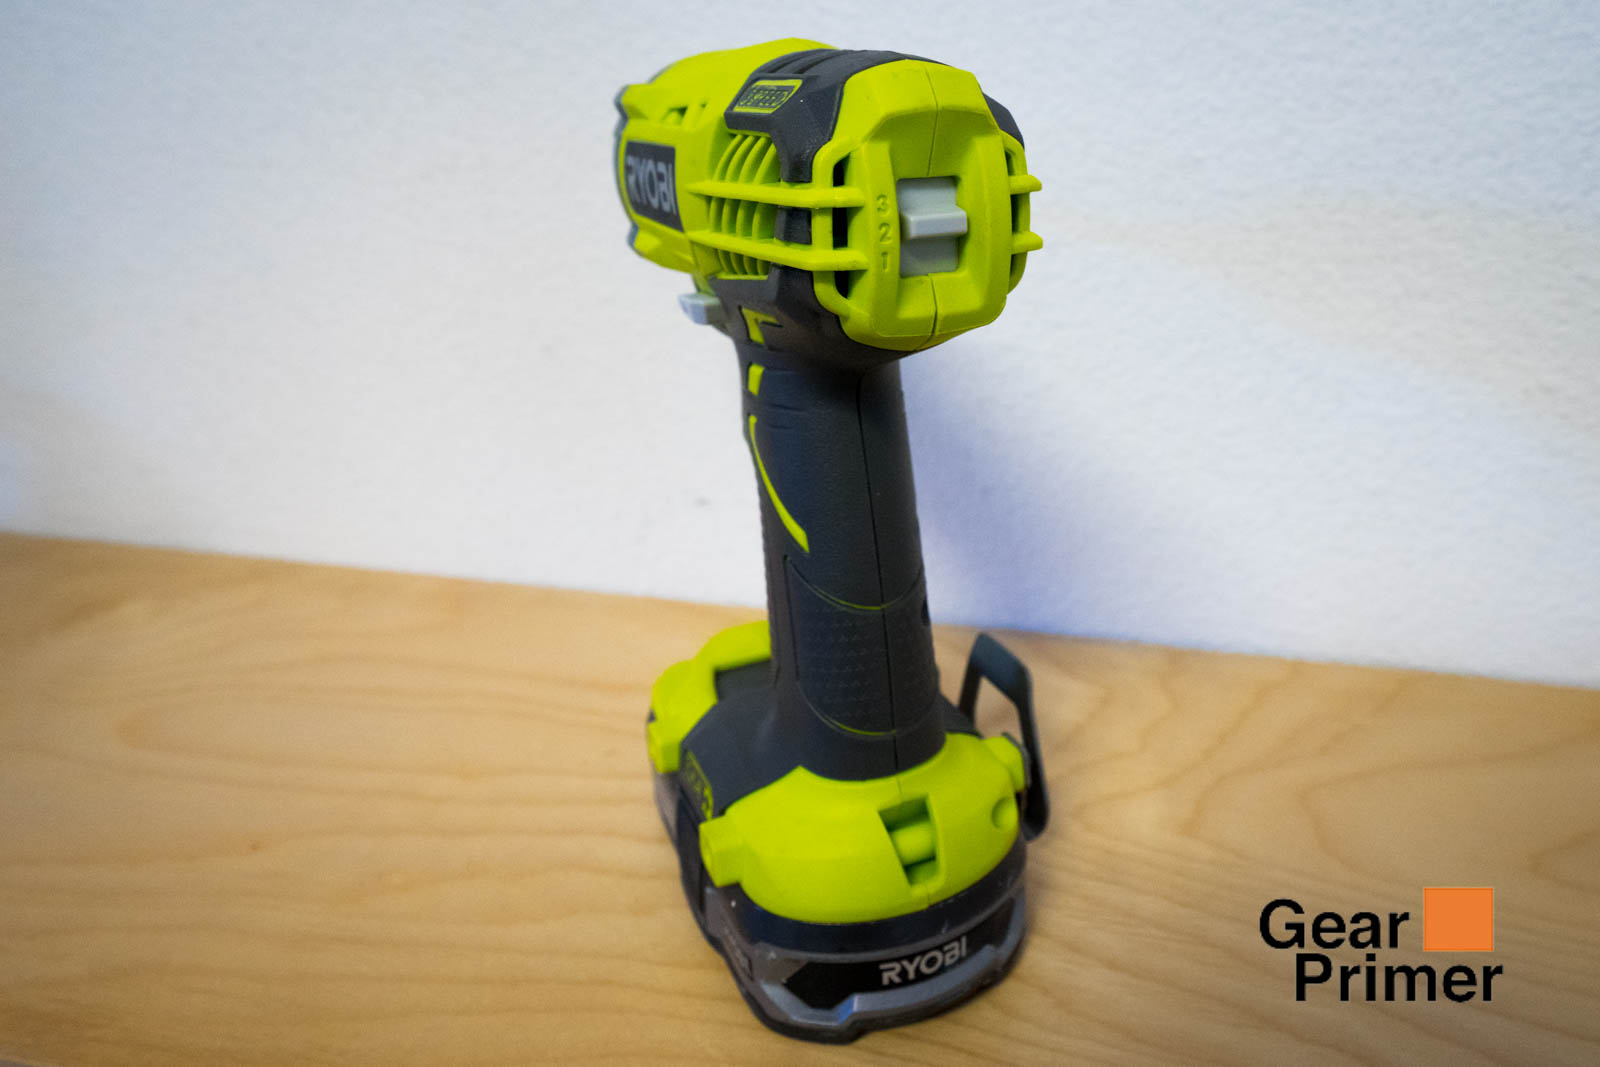 Ryobi P237 Review | Impact Driver | 18 Volt ONE+ 3-Speed 3